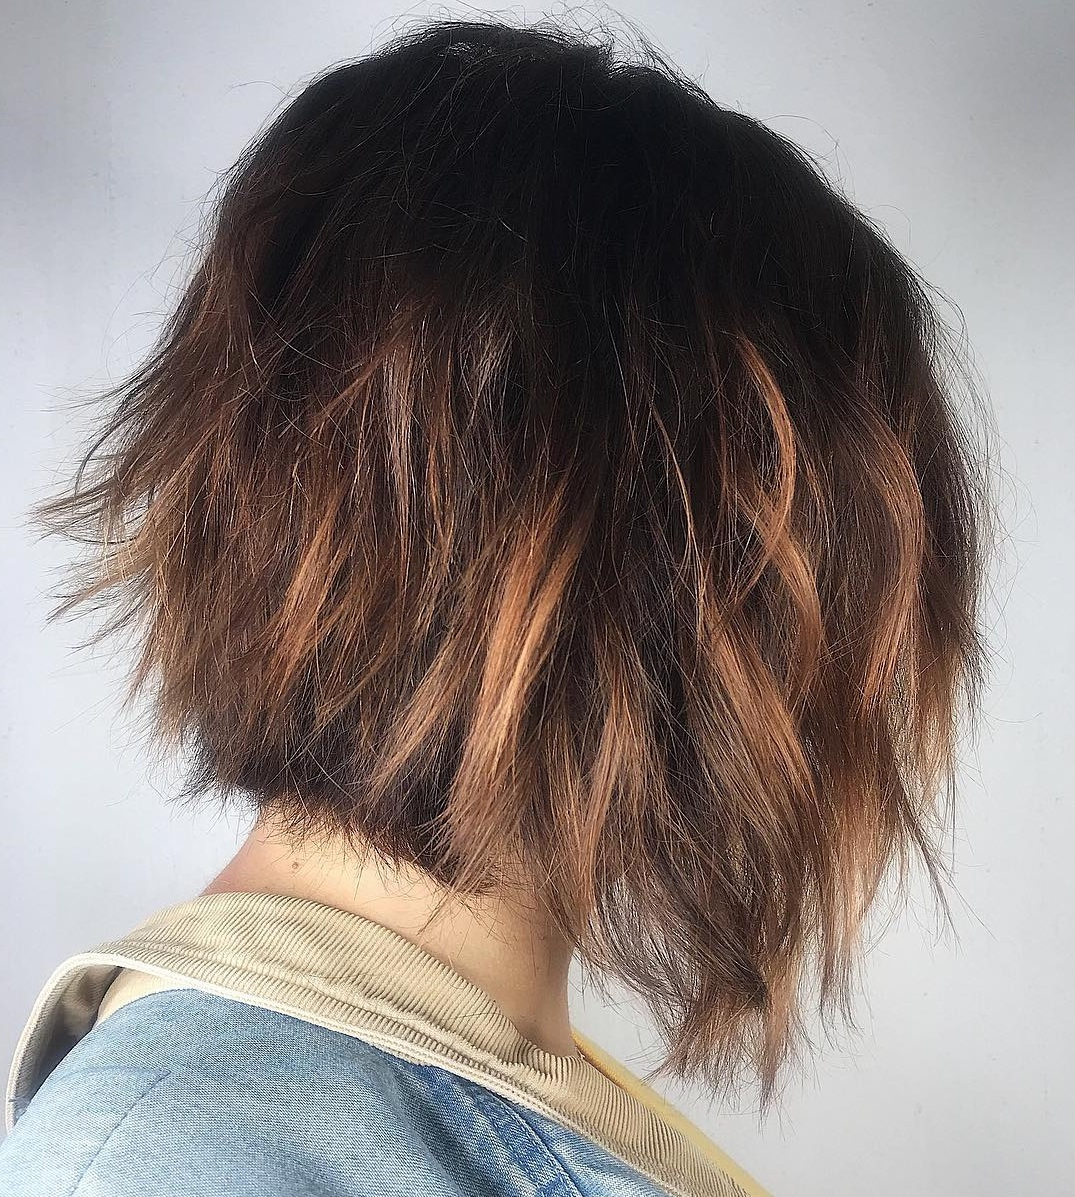 45 Short Hairstyles For Fine Hair To Rock In 2019 For Tapered Shaggy Chocolate Brown Bob Hairstyles (View 14 of 20)